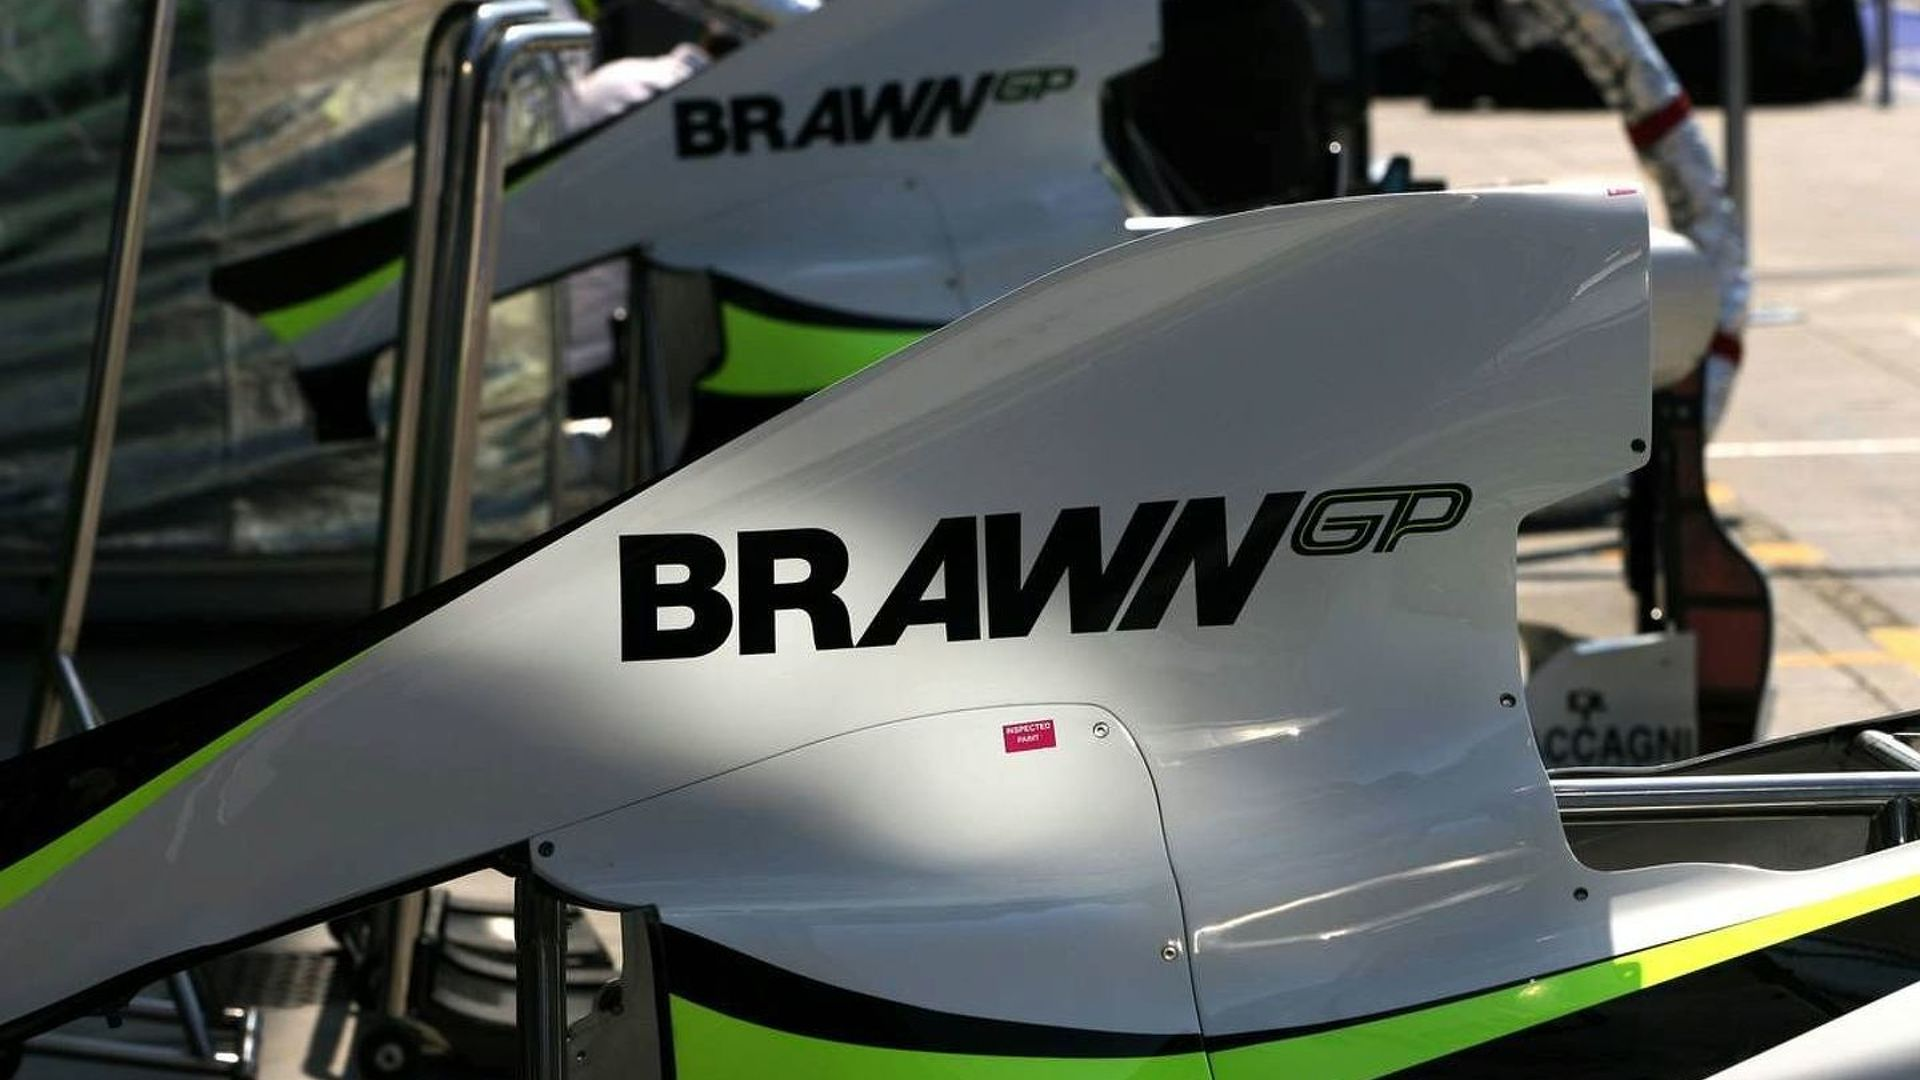 'Pure-Mercedes' name for Brawn turned down